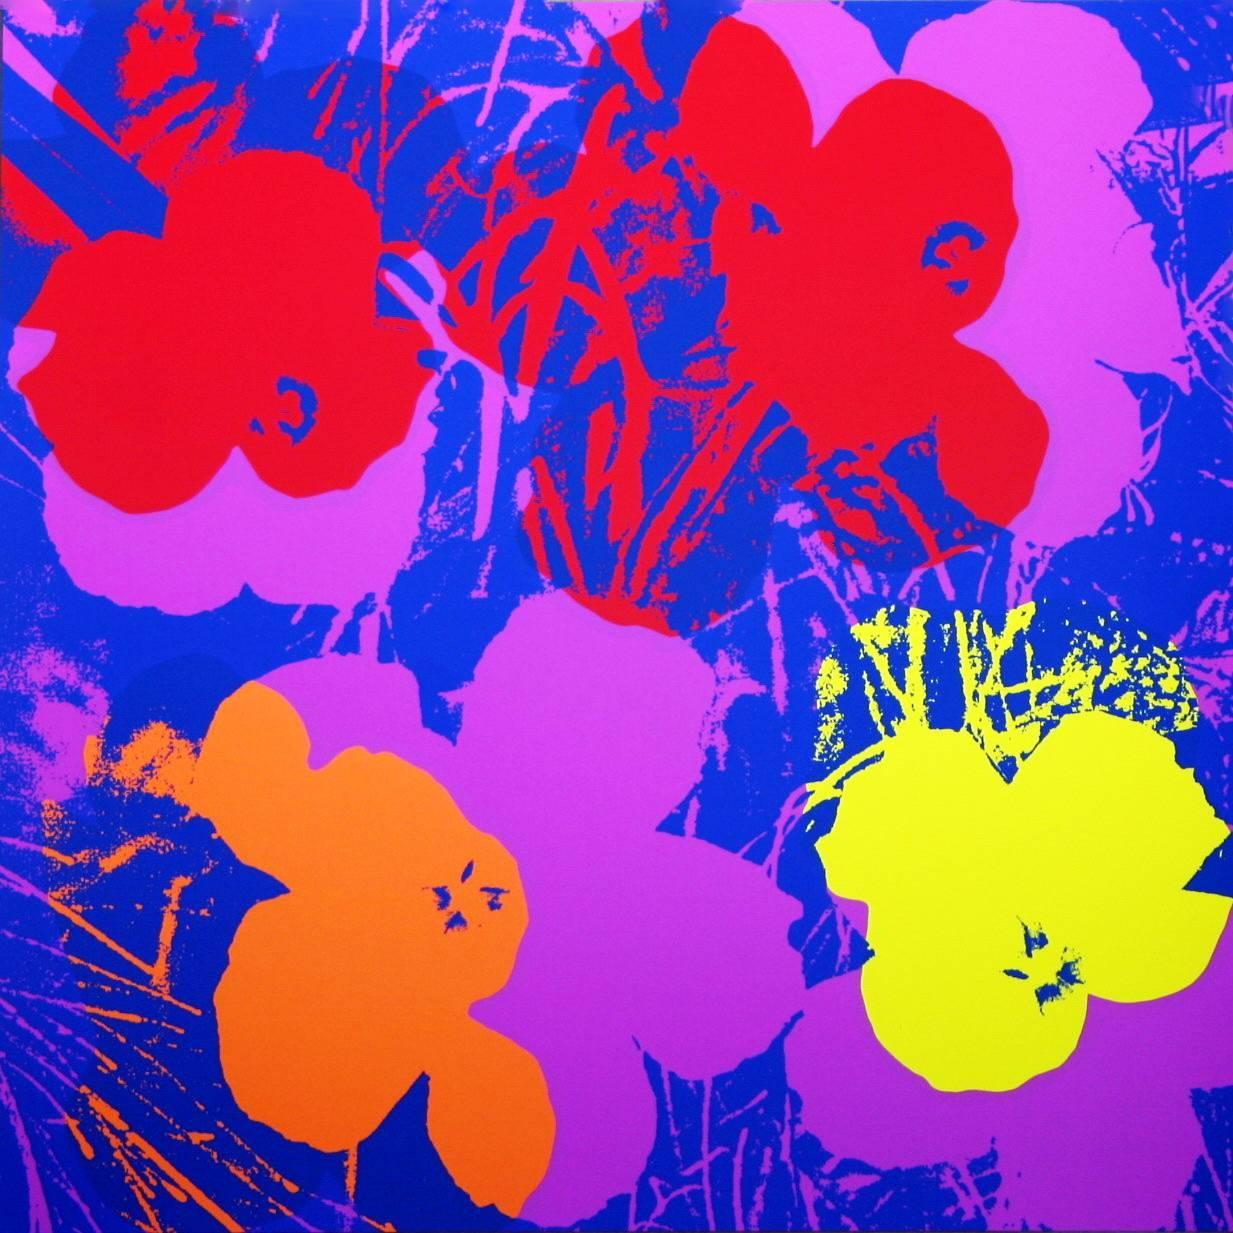 Andy Warhol Flowers Screen Print After Andy Warhol At